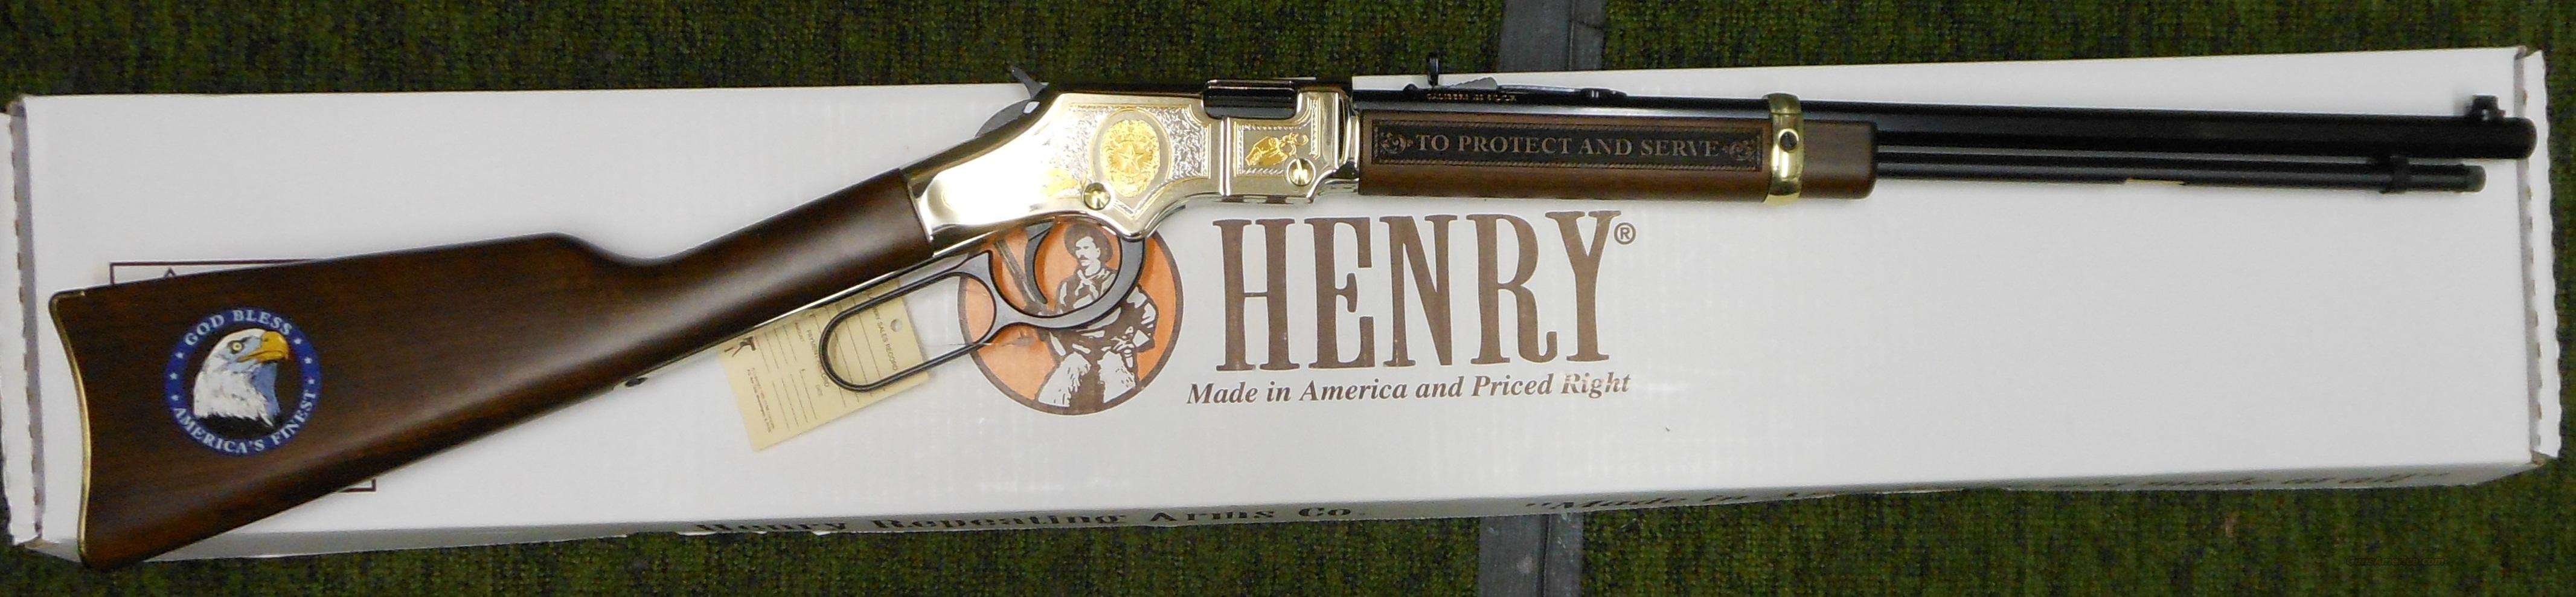 HENRY H004LE 22LR LEVER ACTION RIFLE *LAW ENFORCEMENT TRIBUTE EDITION *  Guns > Rifles > Henry Rifle Company